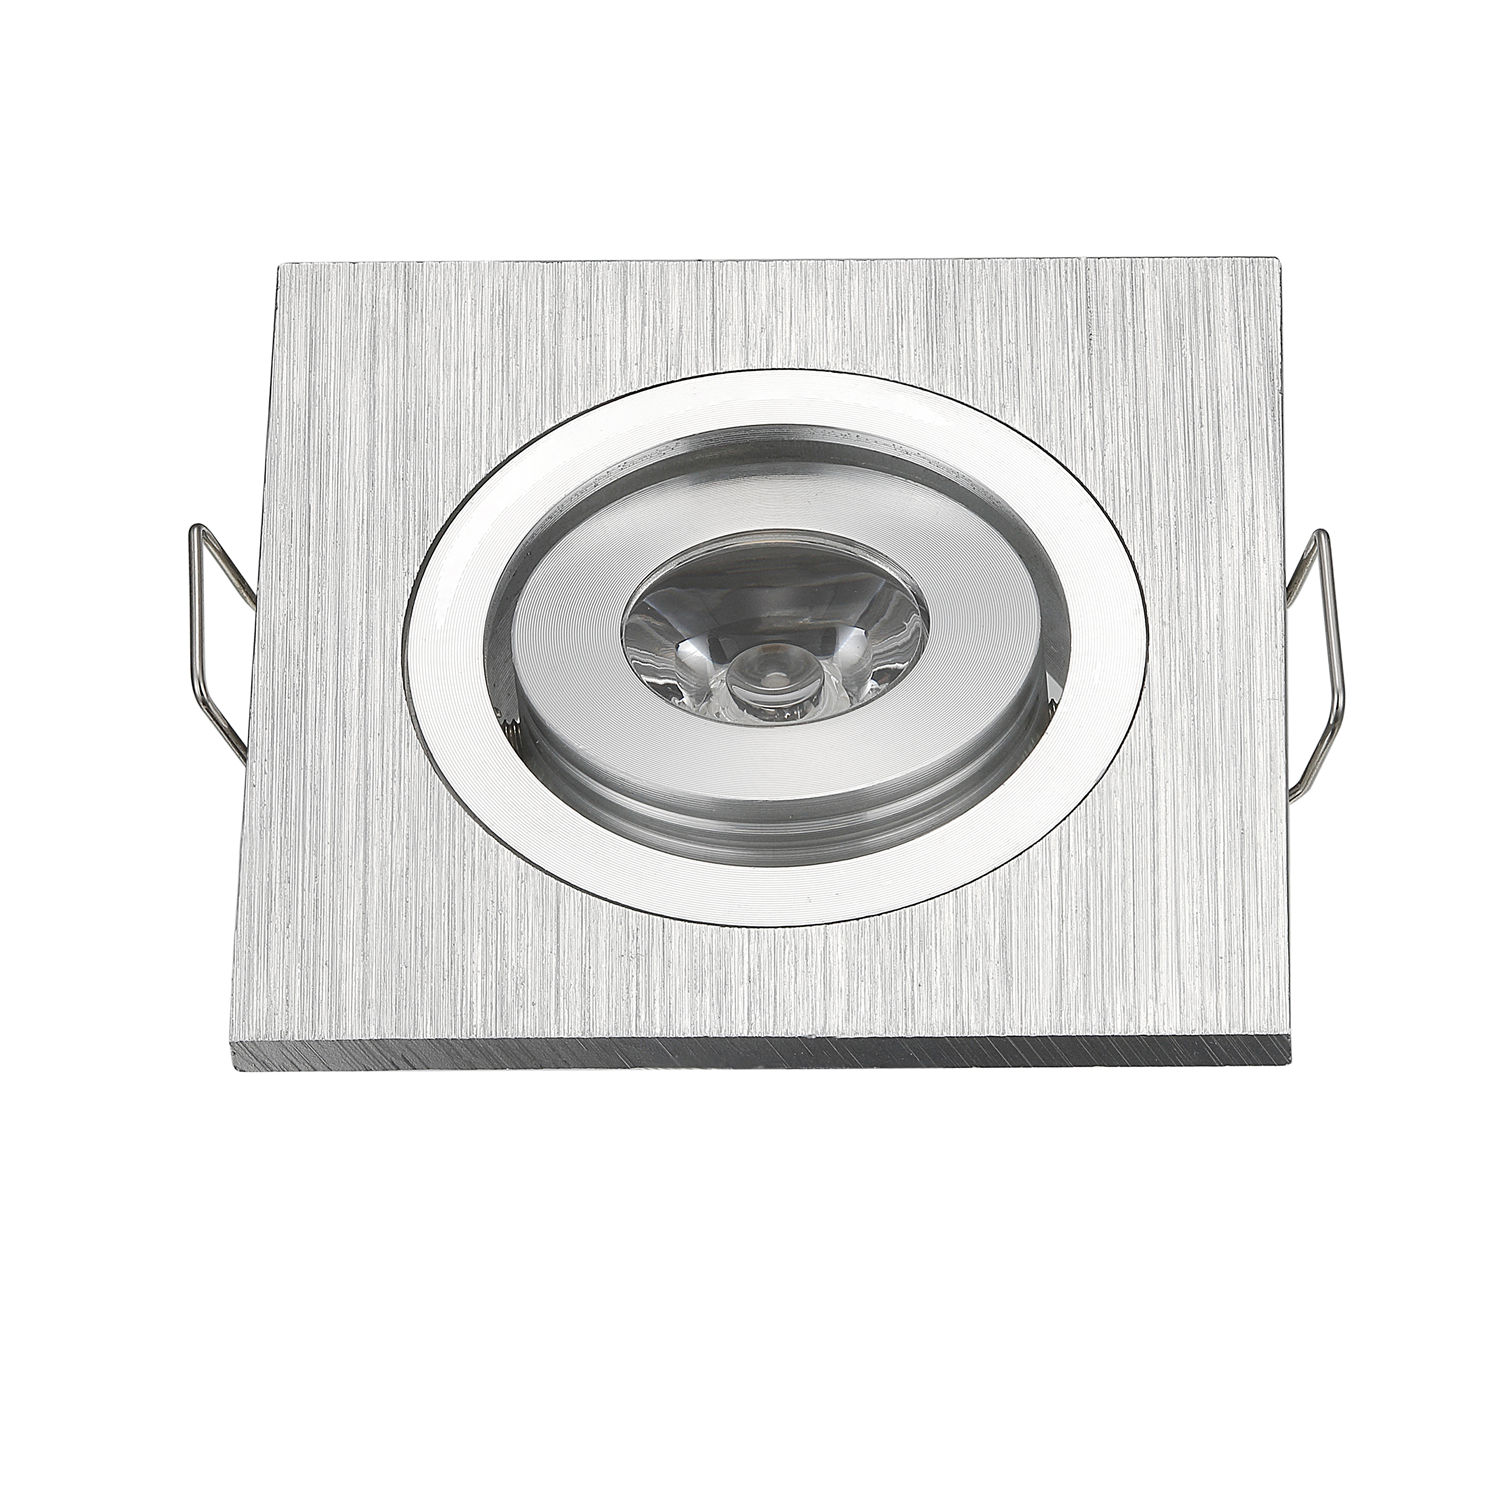 Low Profile Shenzhen 1 W 3 W Aluminium Led Down Light <span class=keywords><strong>Dimbare</strong></span> Led Plafondlamp